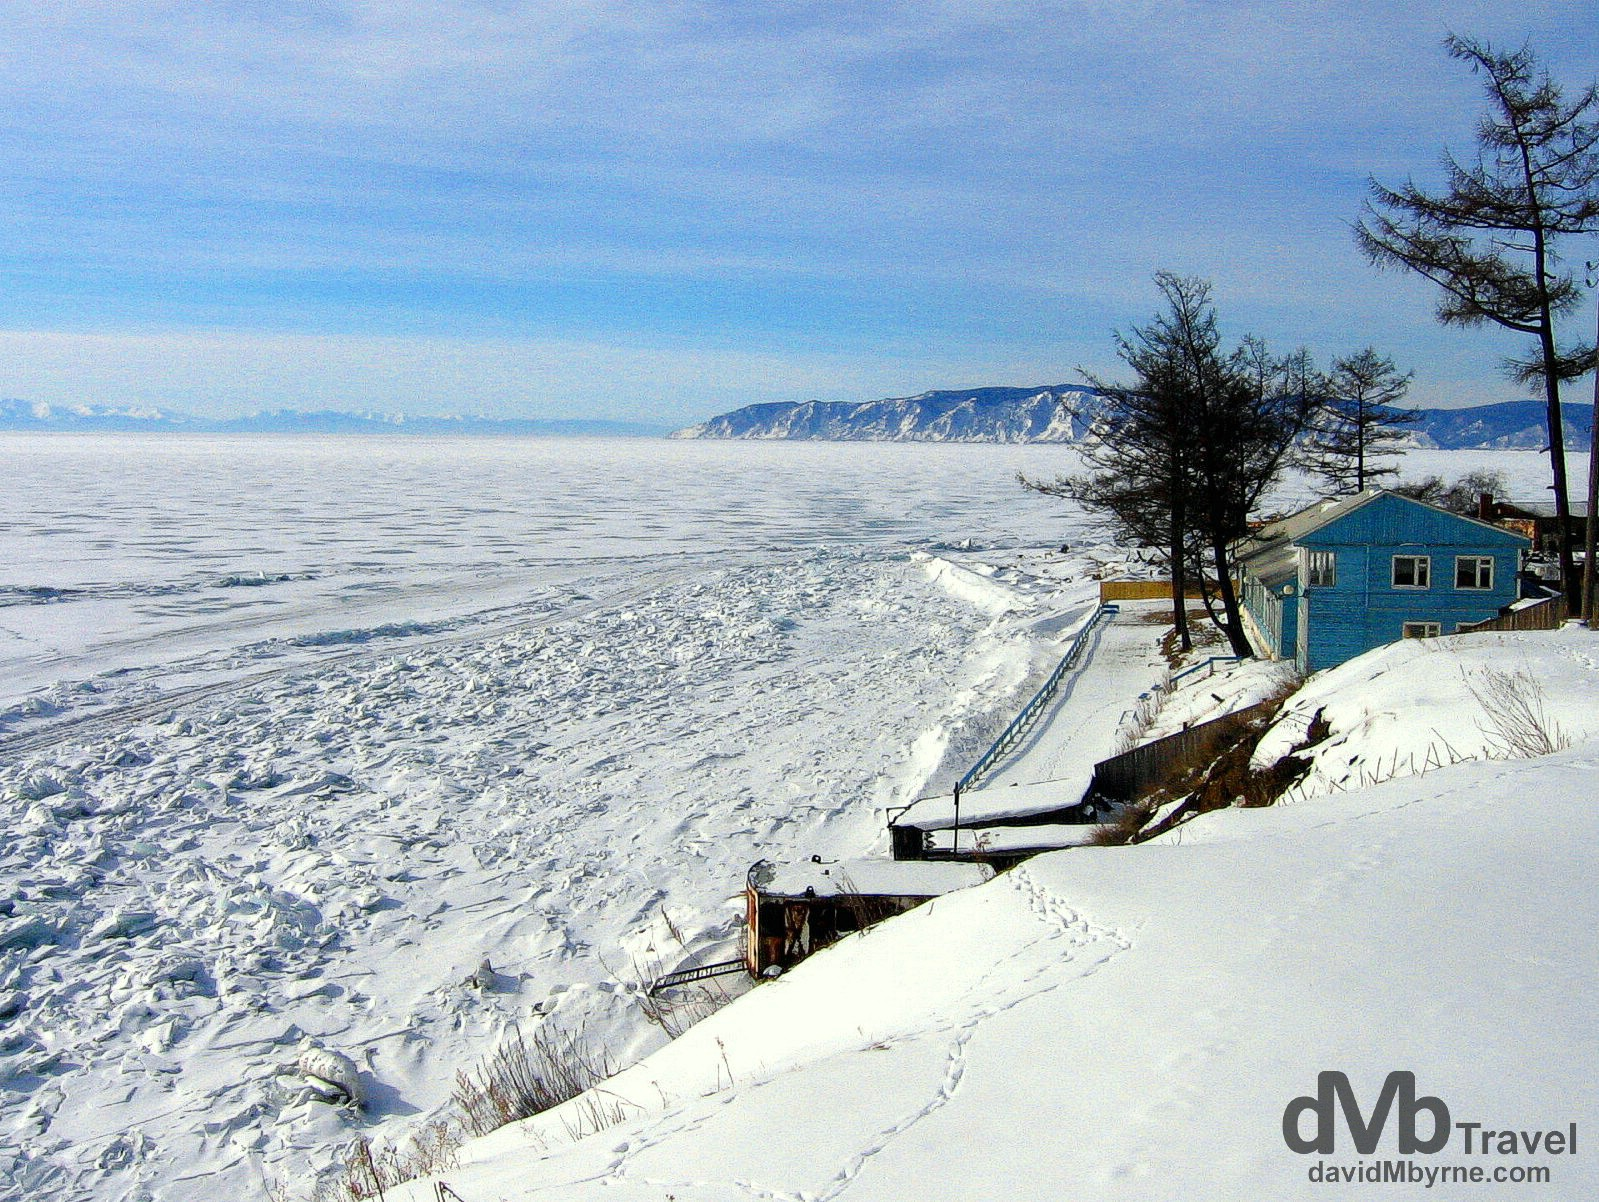 Overlooking Lake Baikal outside the village of Listvyanka in Siberian Russia. February 18, 2006.